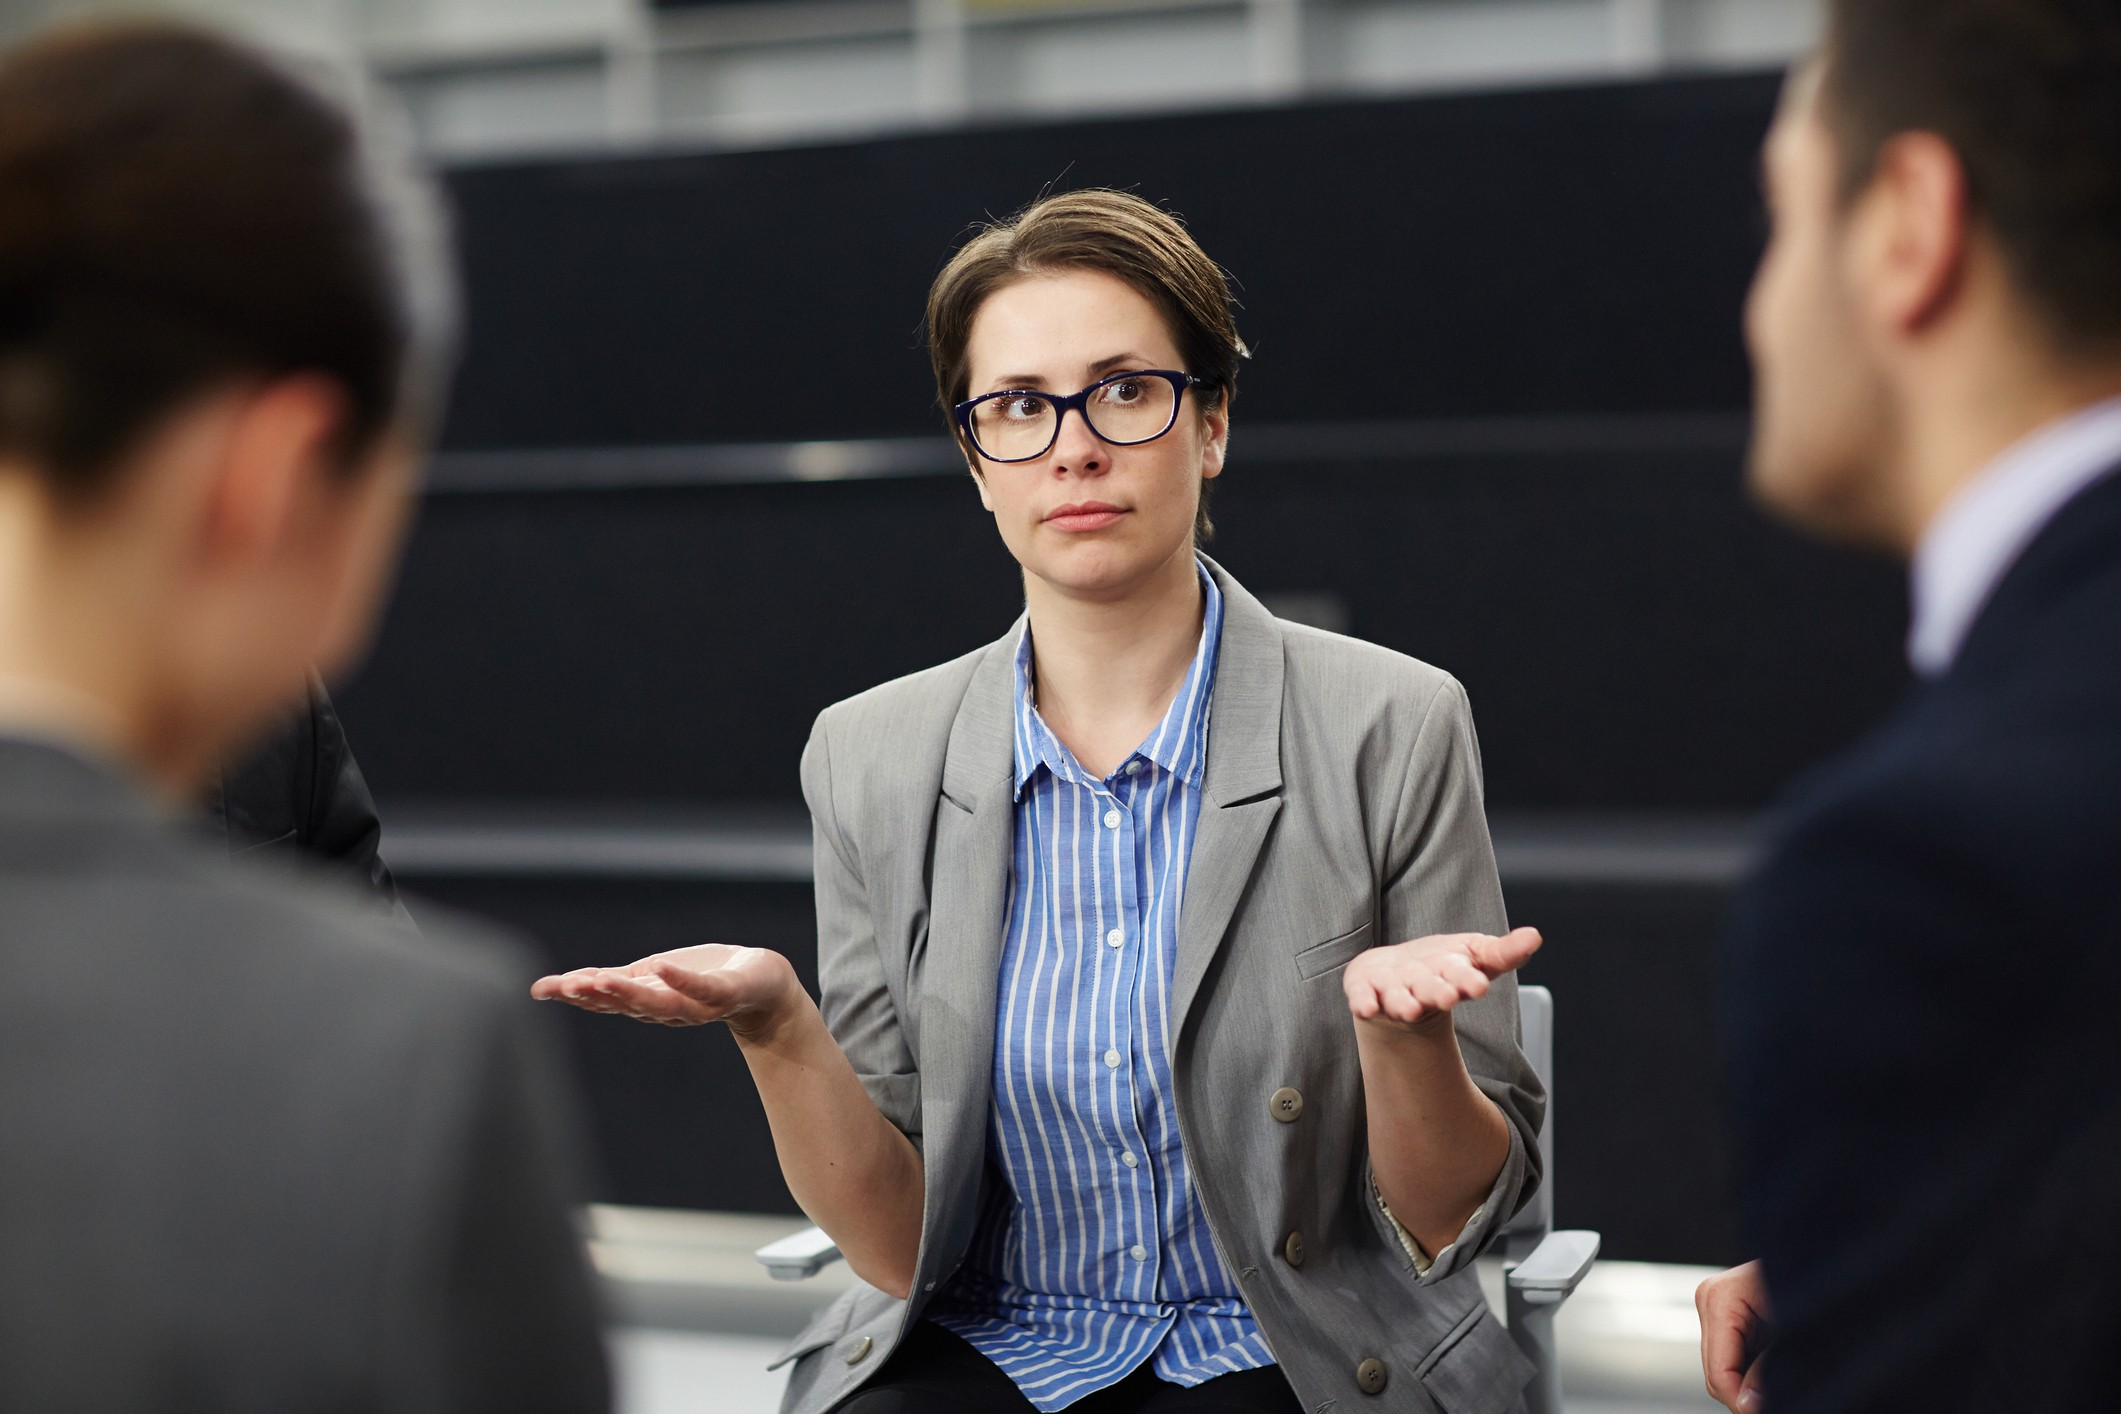 Business woman gesturing uncertainty.